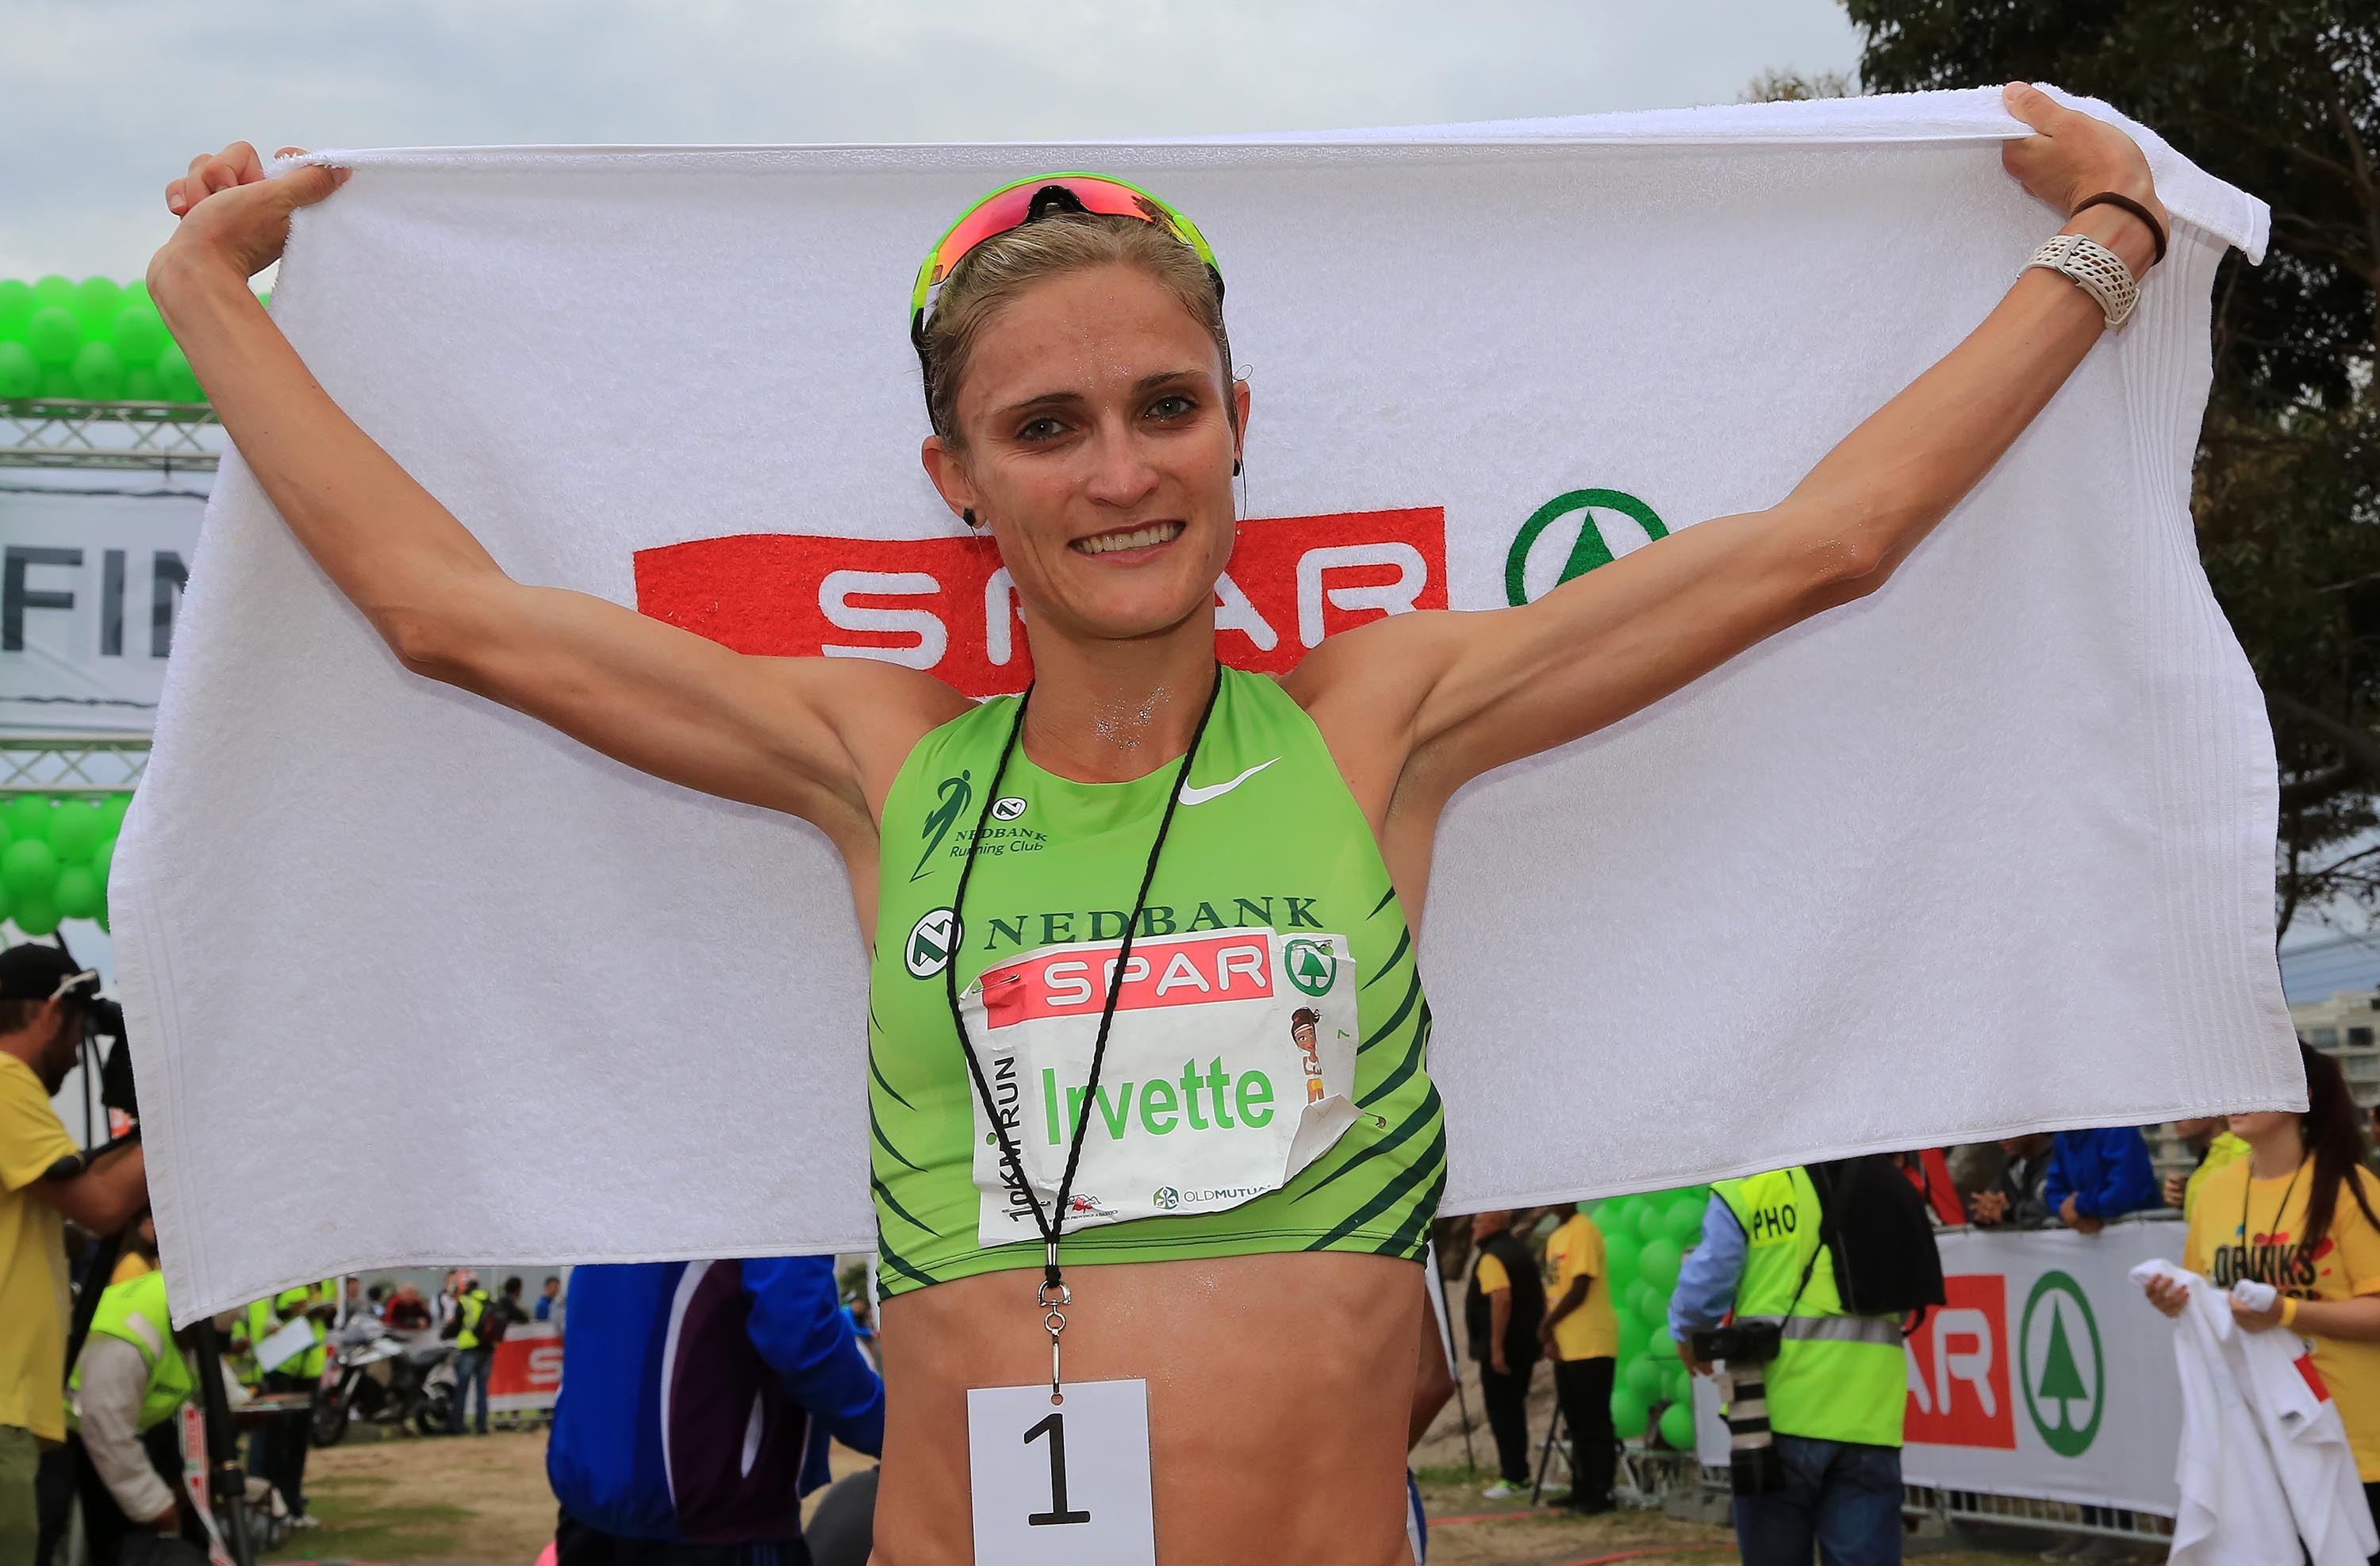 Irvette van Zyl, the winner of the SPAR Women's Challenge in Durban today. Photo: Reg Caldecott.